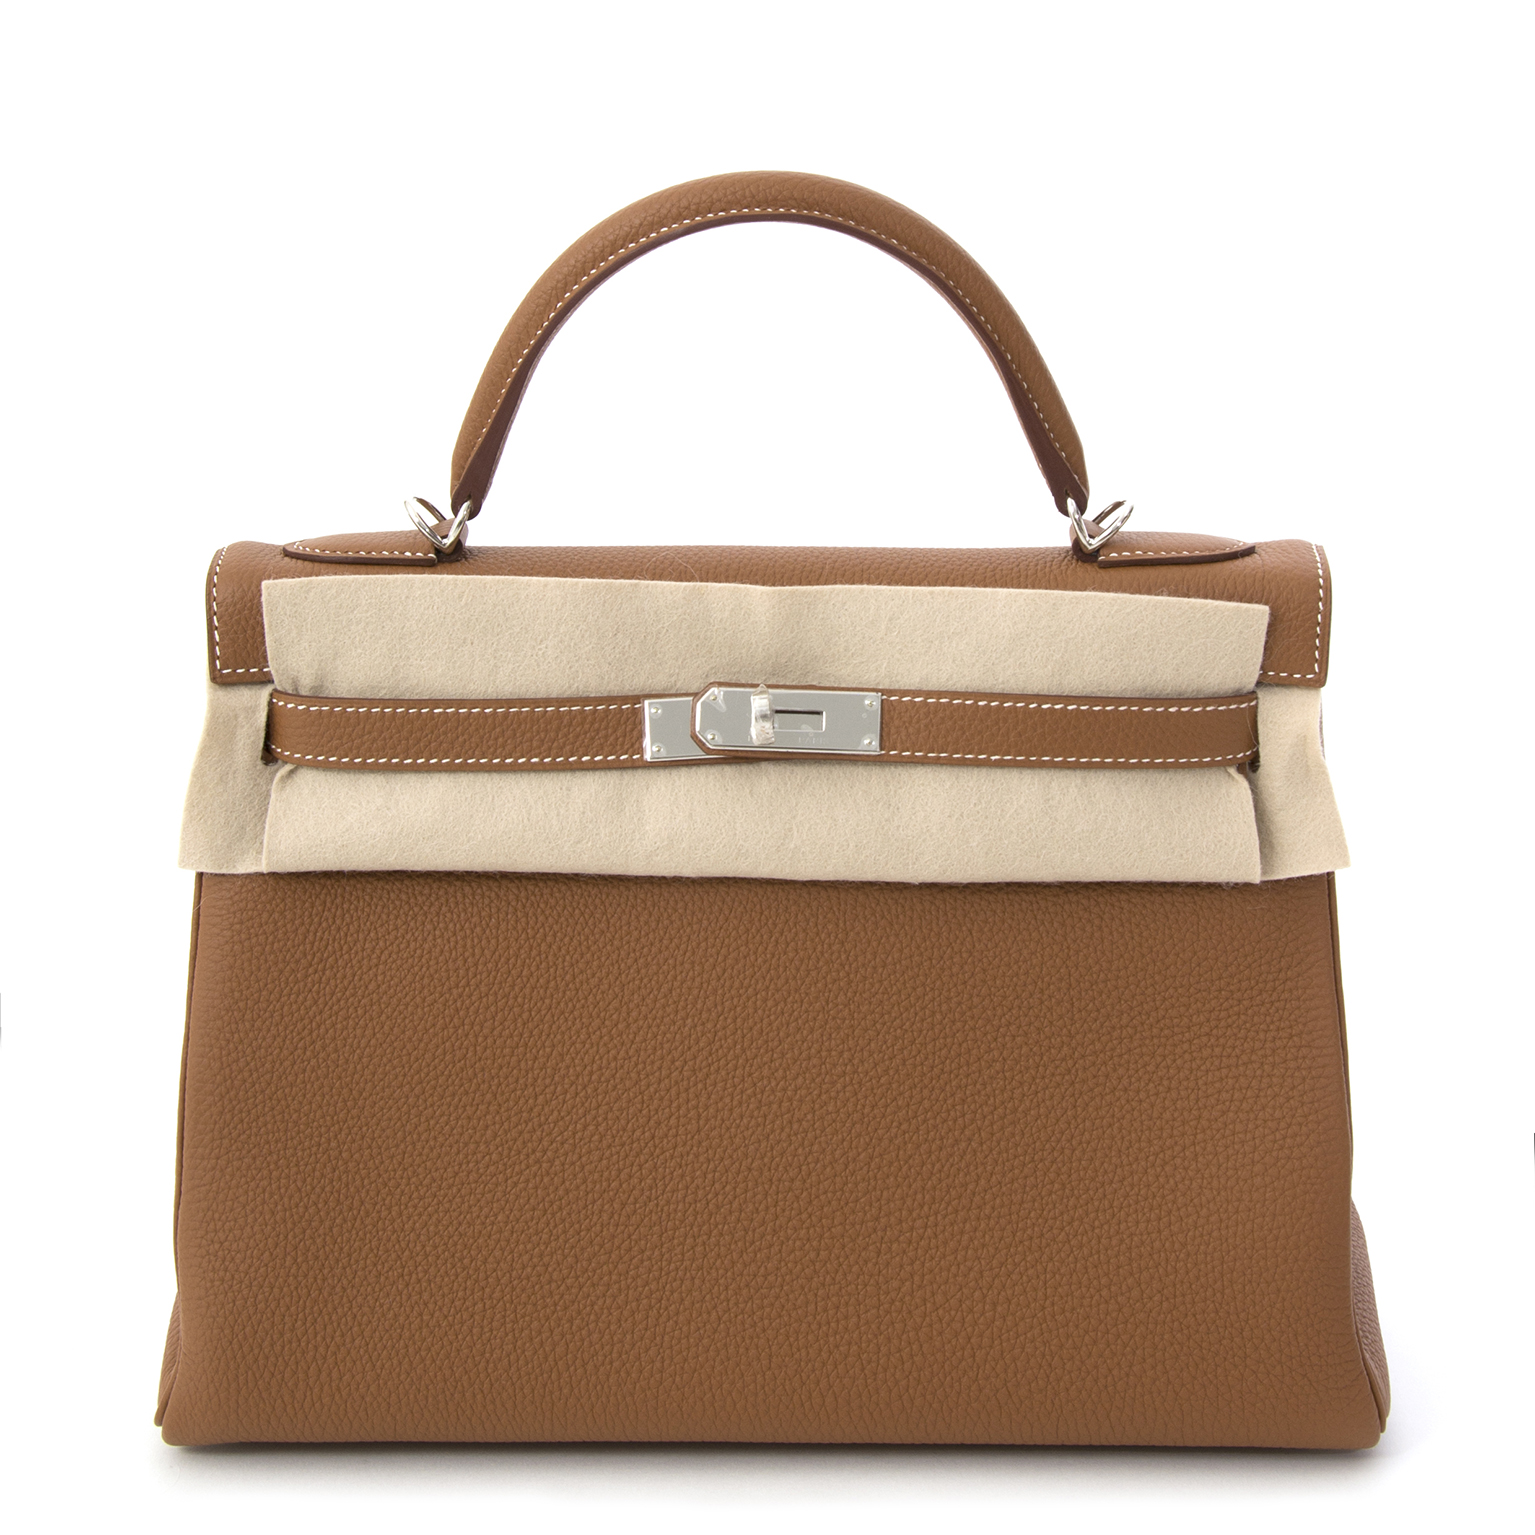 e0d2623931b9 ... sale on Labellov Nieuwe en authentieke Hermès Kelly Togo 32 in gold met  zilveren hardware · Hermes